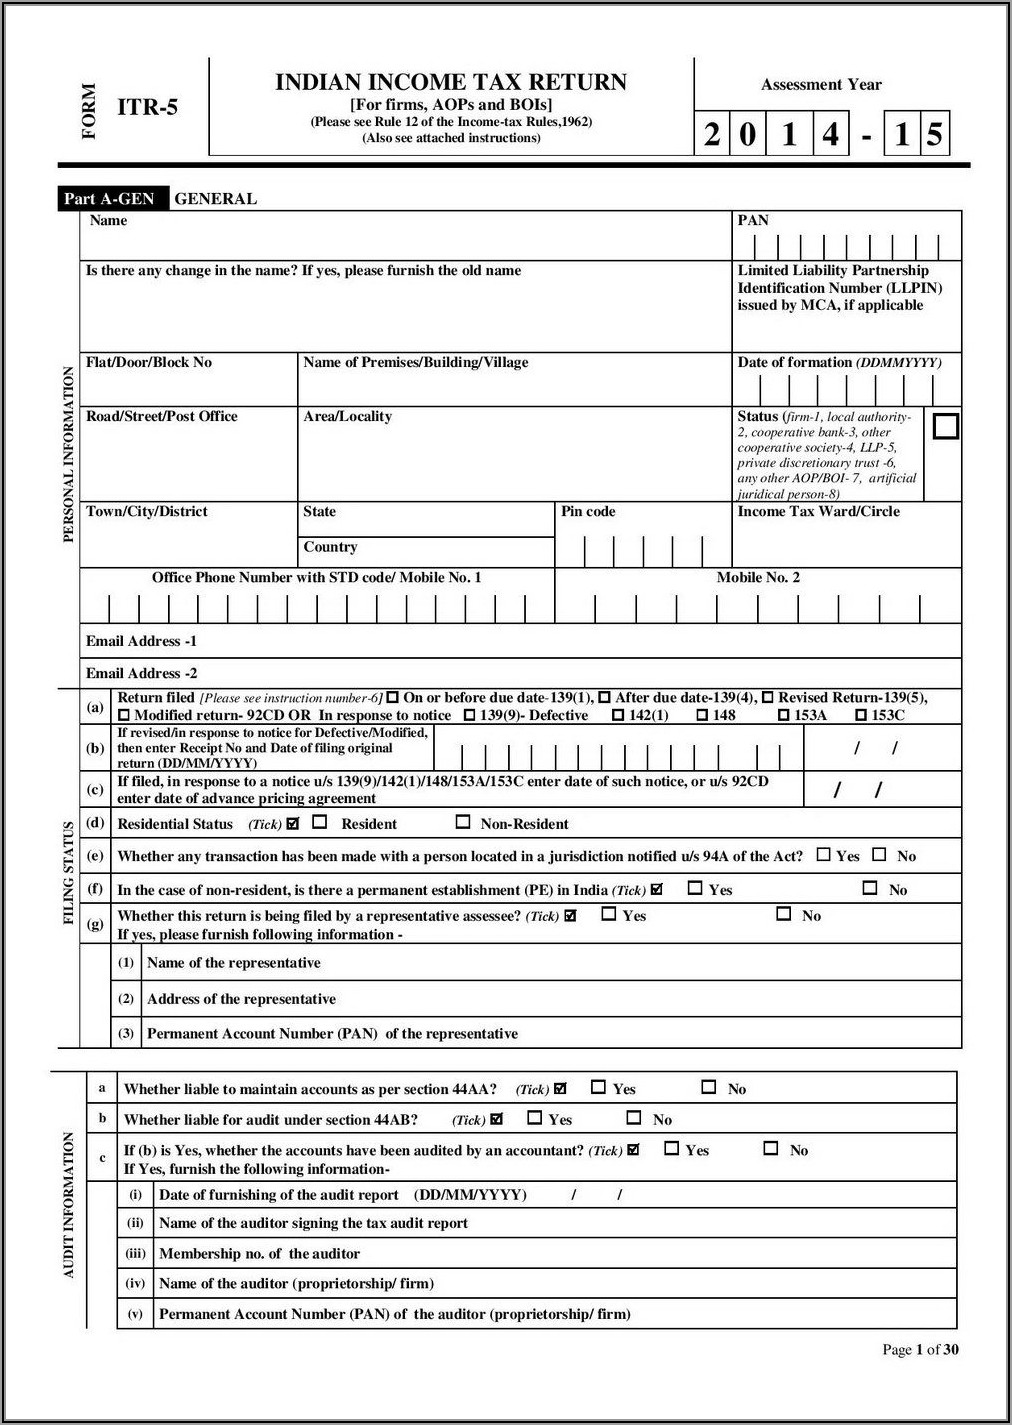 Irs Forms 1040ez 2014